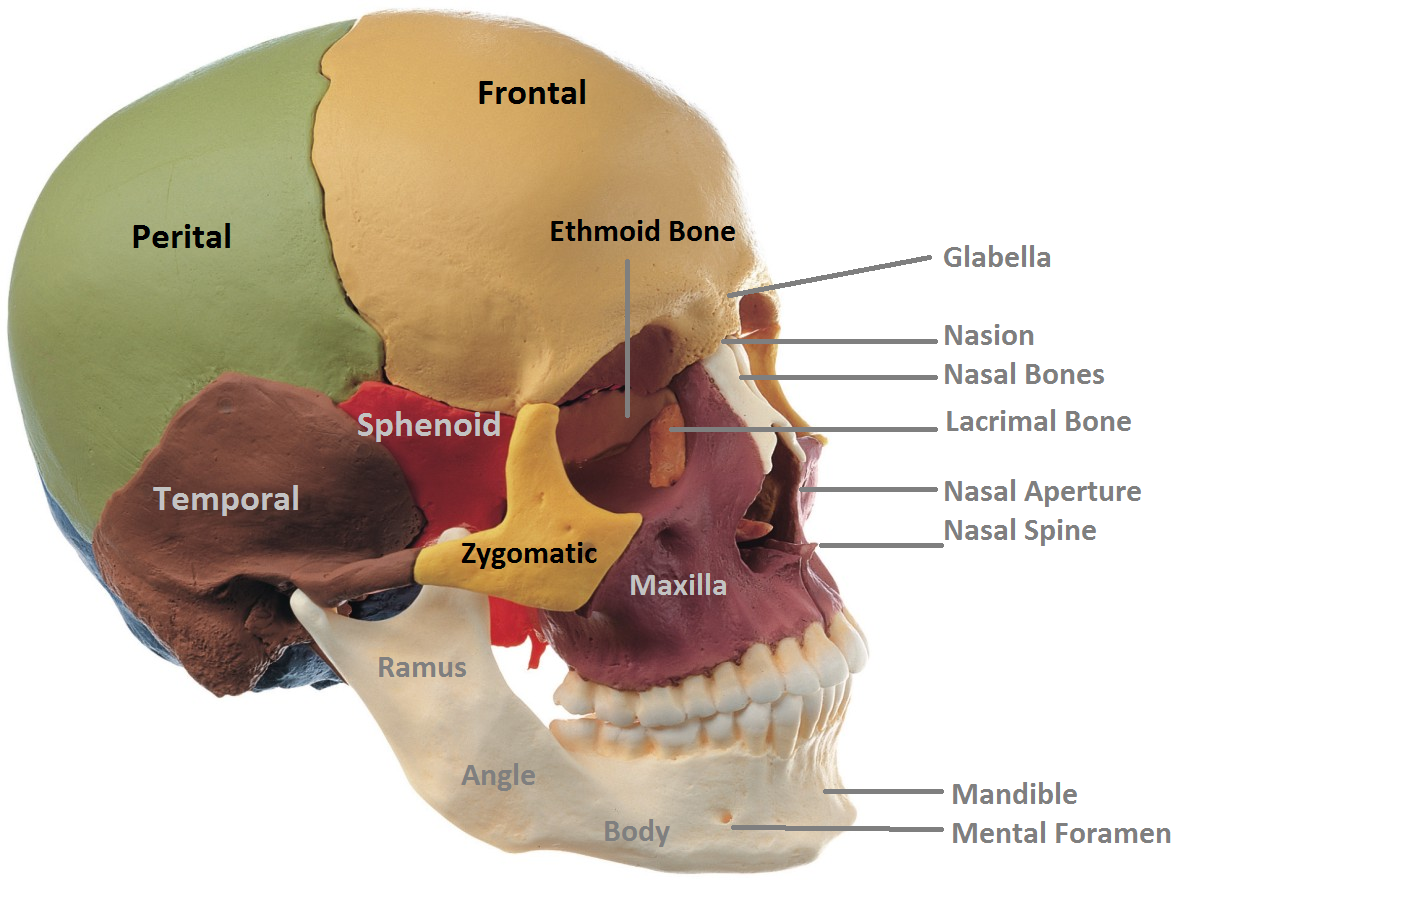 Anatomy Made Easy Anterior View Of Skull